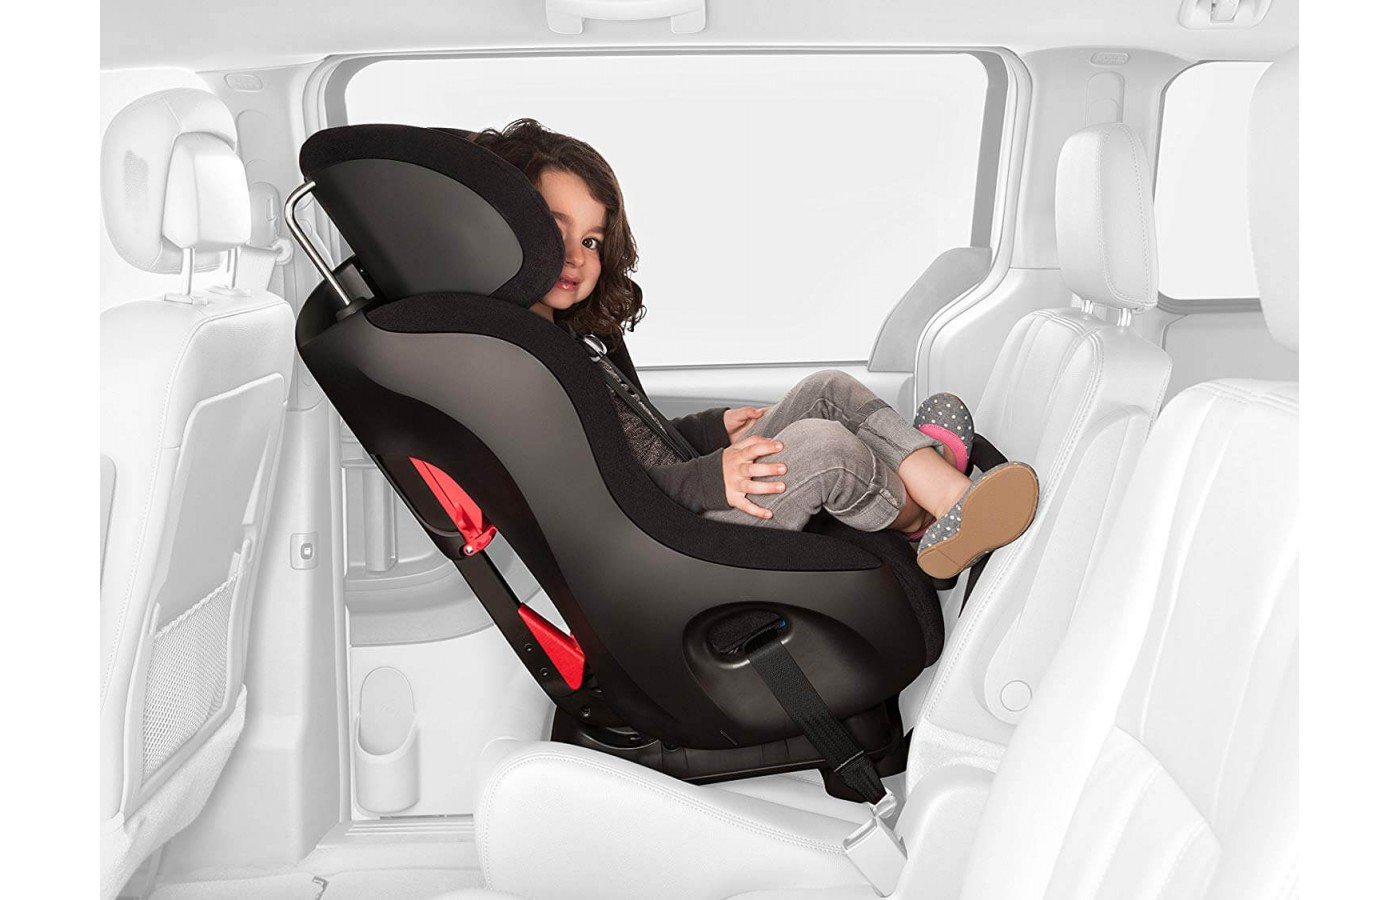 The Clek Fllo is compact and 3 can fit in the backseat.